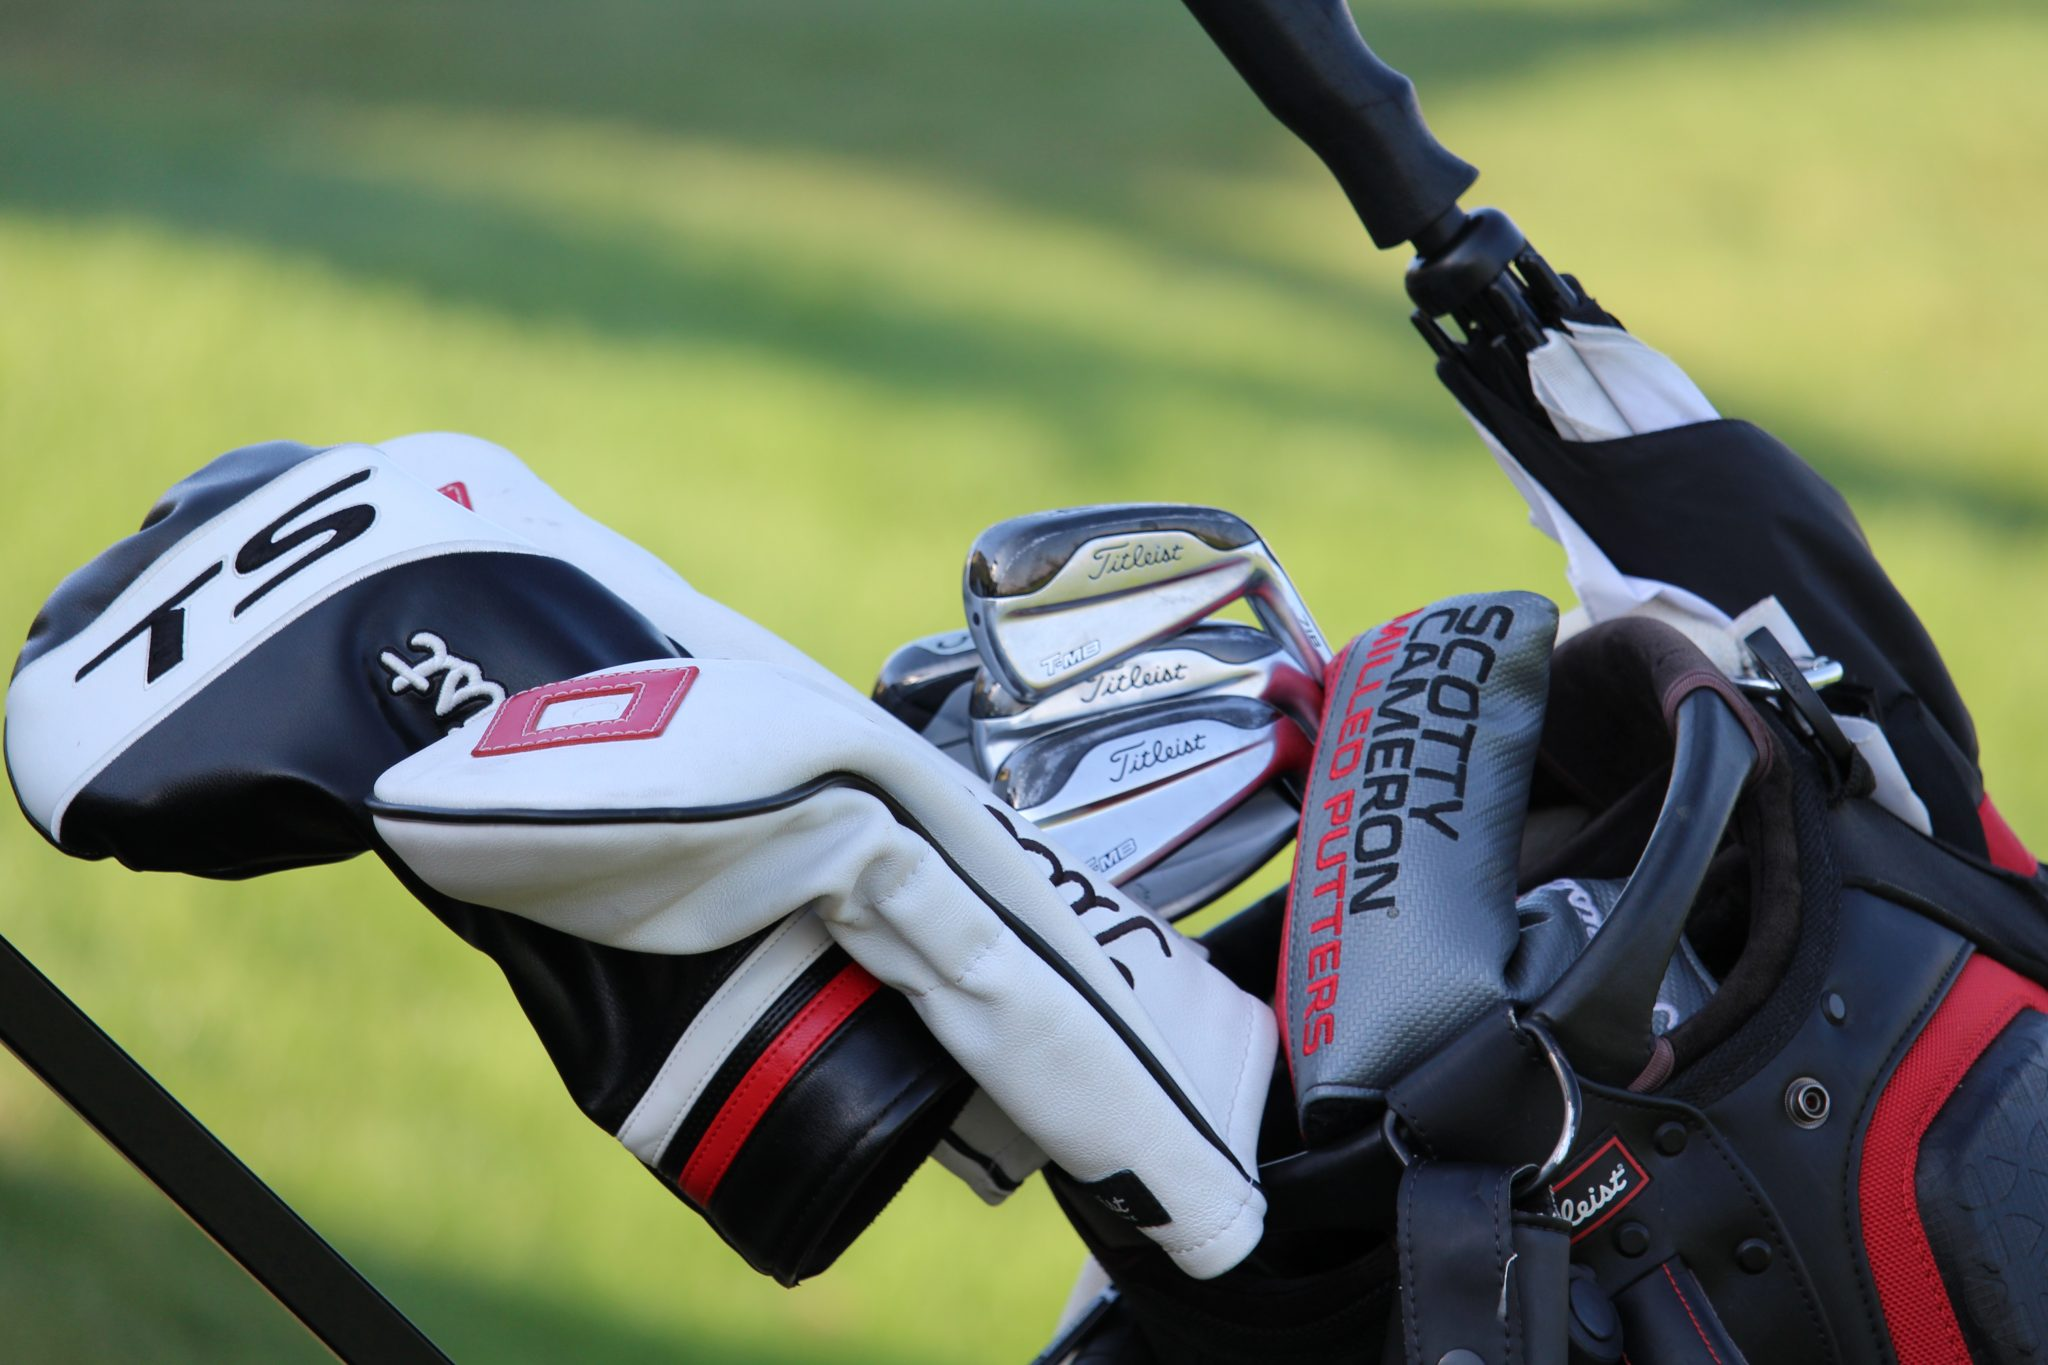 A golf bag with golf clubs